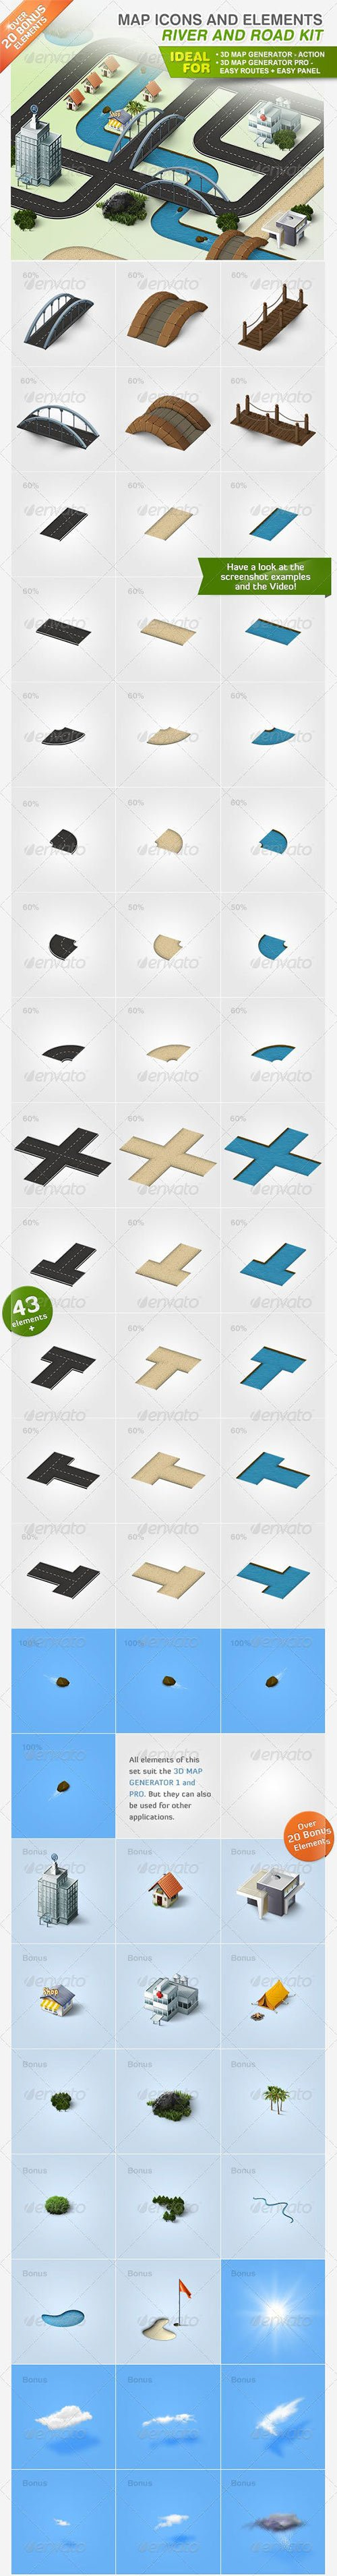 GraphicRiver - Map Icons and Elements - River and Road Kit 3786776